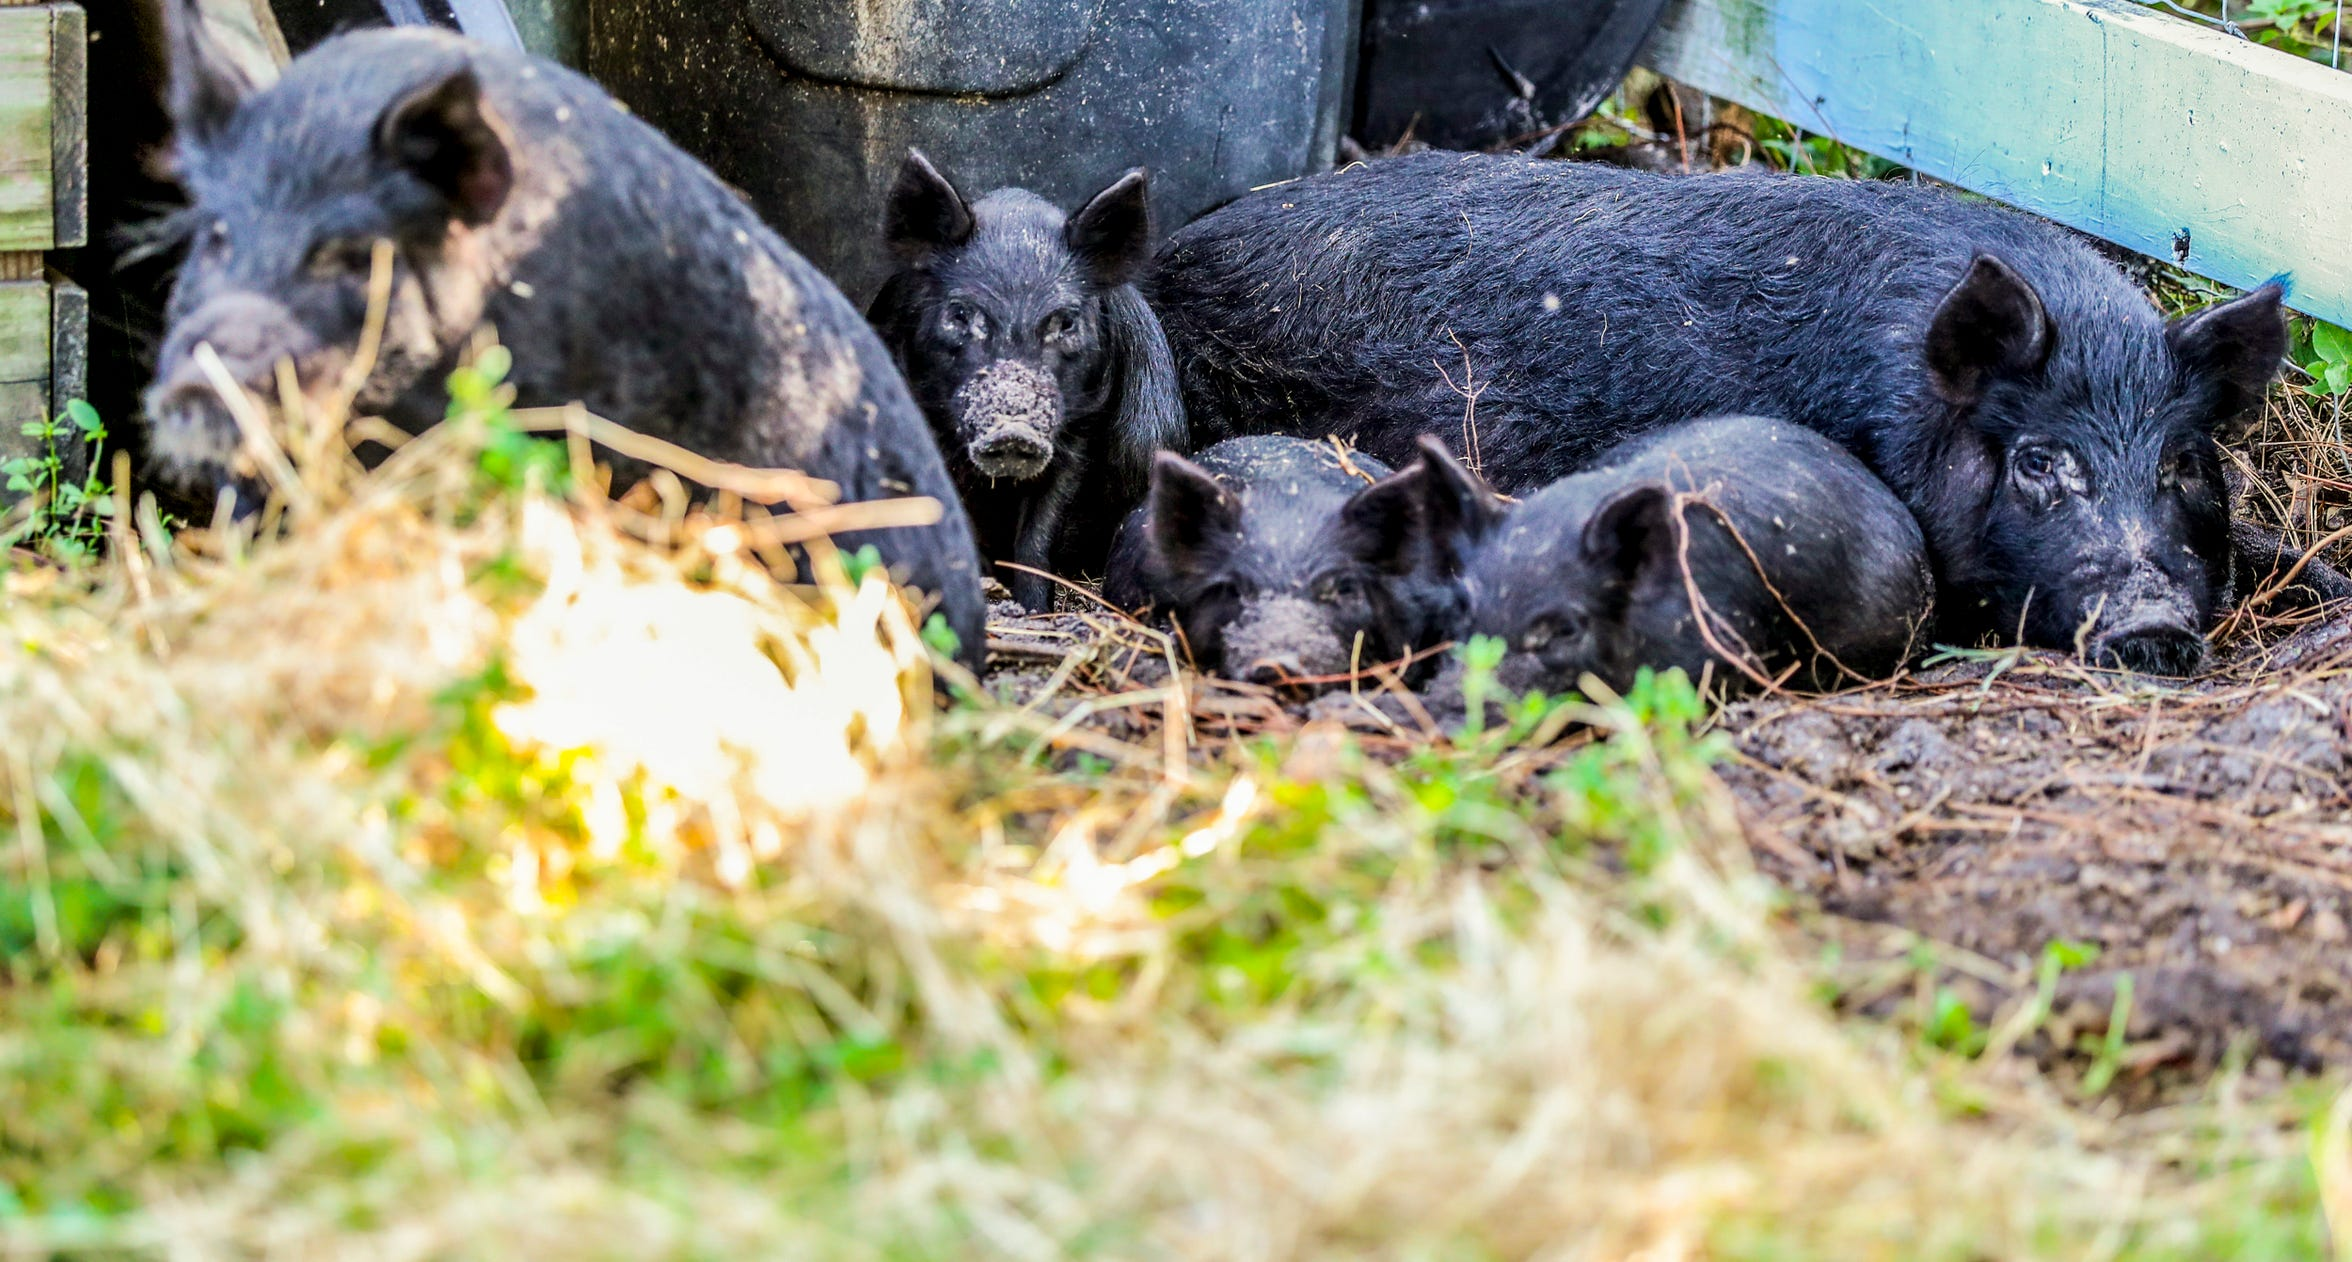 American Guinea hogs are new to Rosy Tomorrows Heritage Farm. Owner Rose O'Dell King hopes this rare breed will thrive in Southwest Florida, like her Red Wattle hogs have.